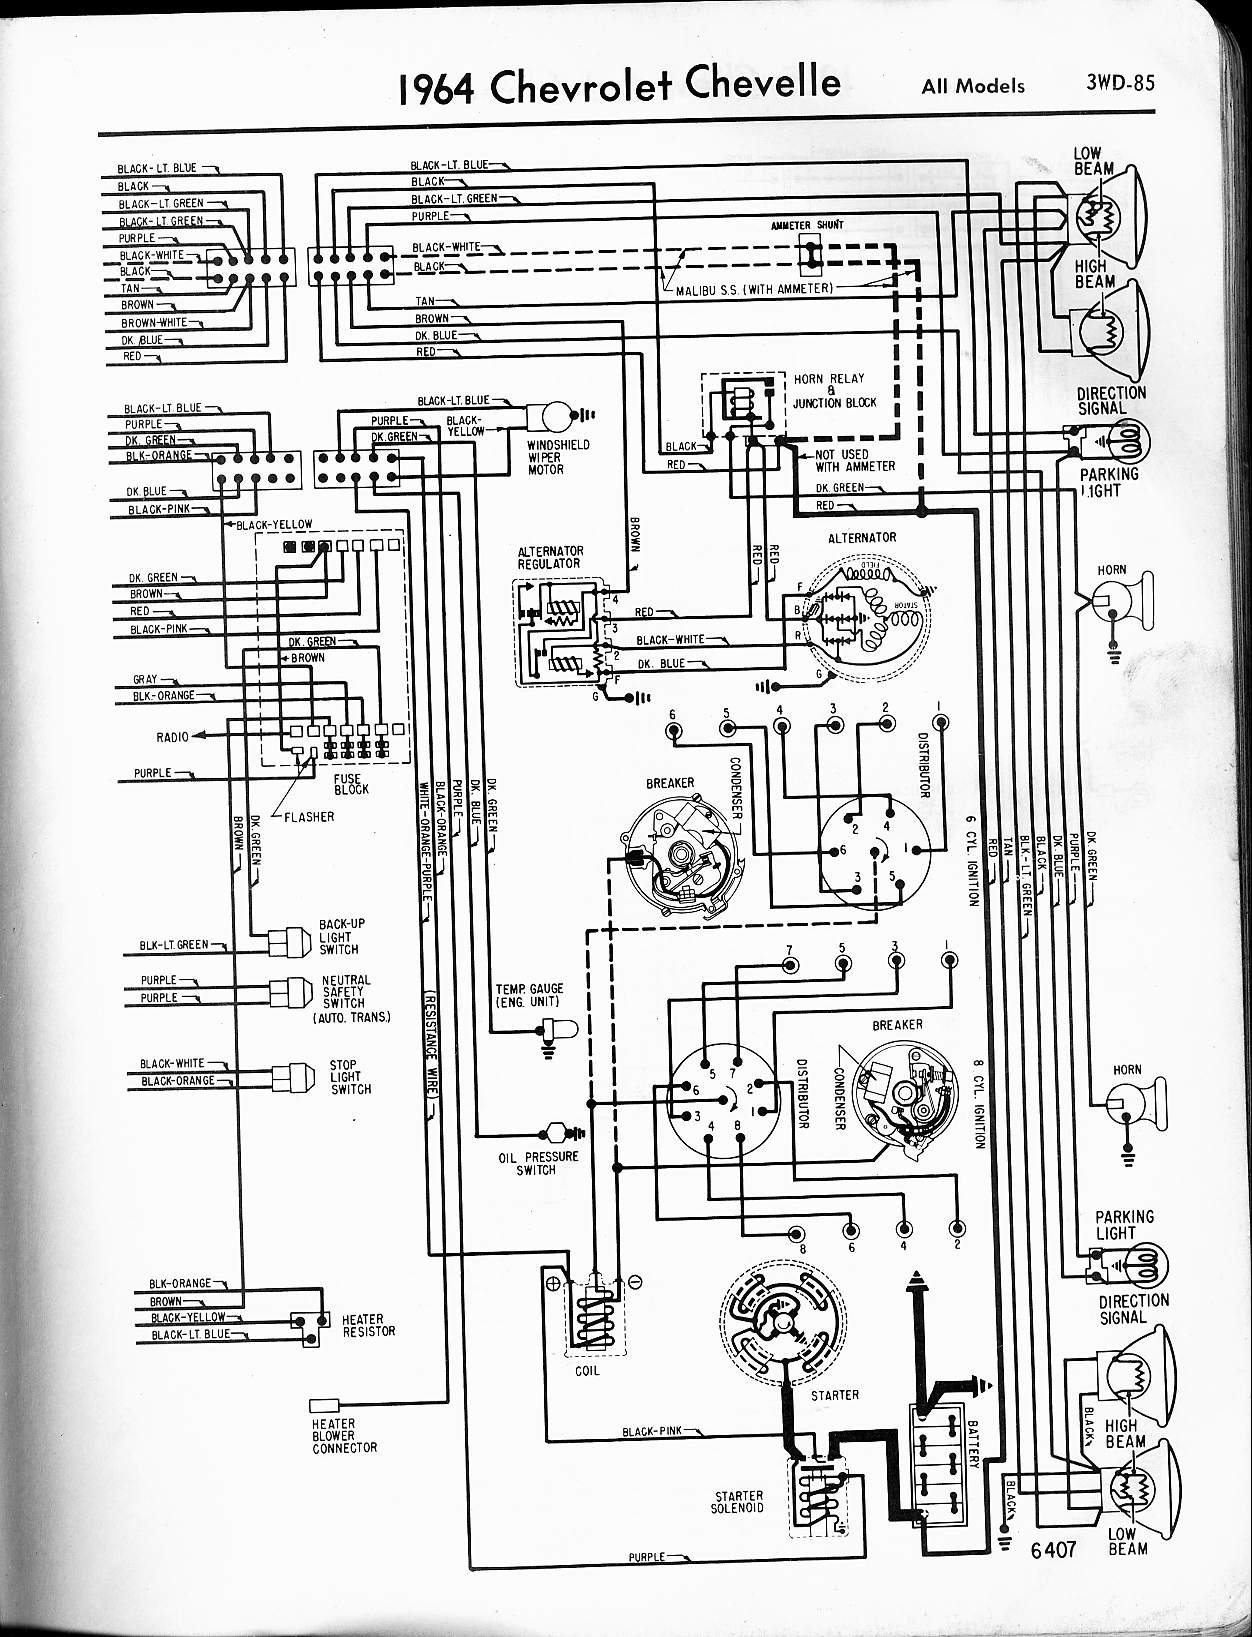 1968 Oldsmobile Cutl Wiring Diagram Library Chevrolet Cruise Control Impala Lights Simple Cruisecontrol 2003 Electrical Chevy